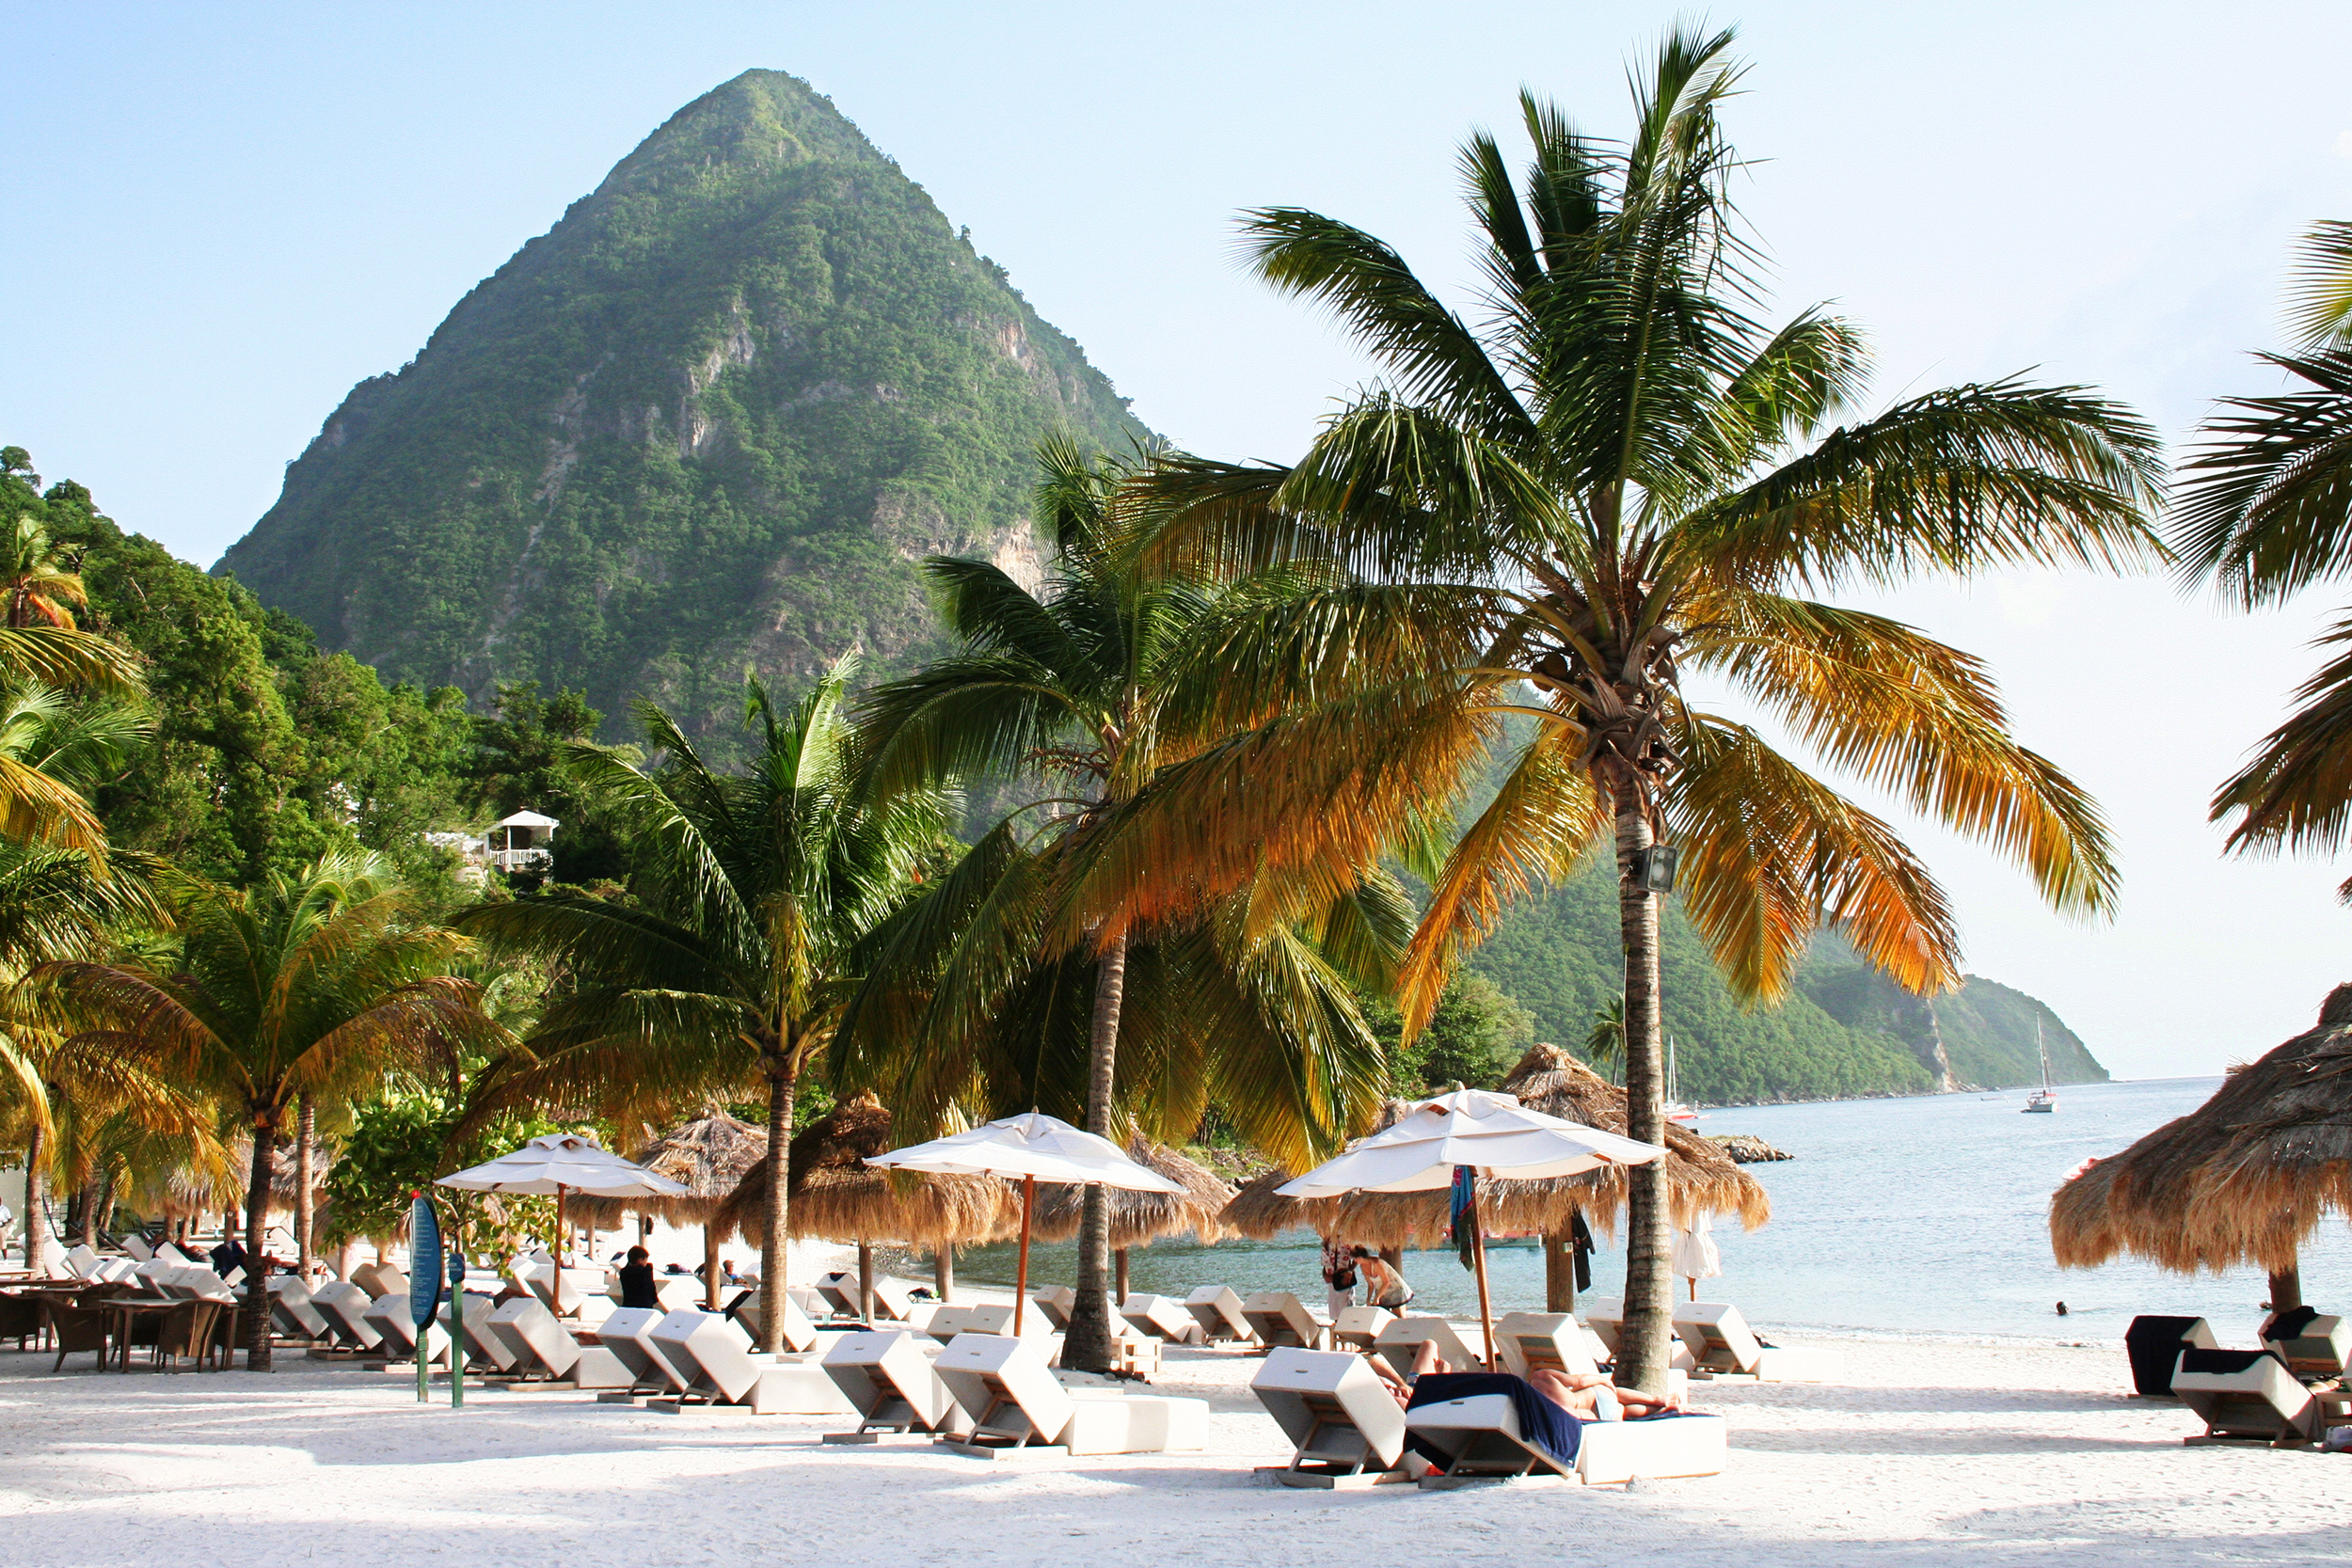 The Pitons in St Lucia